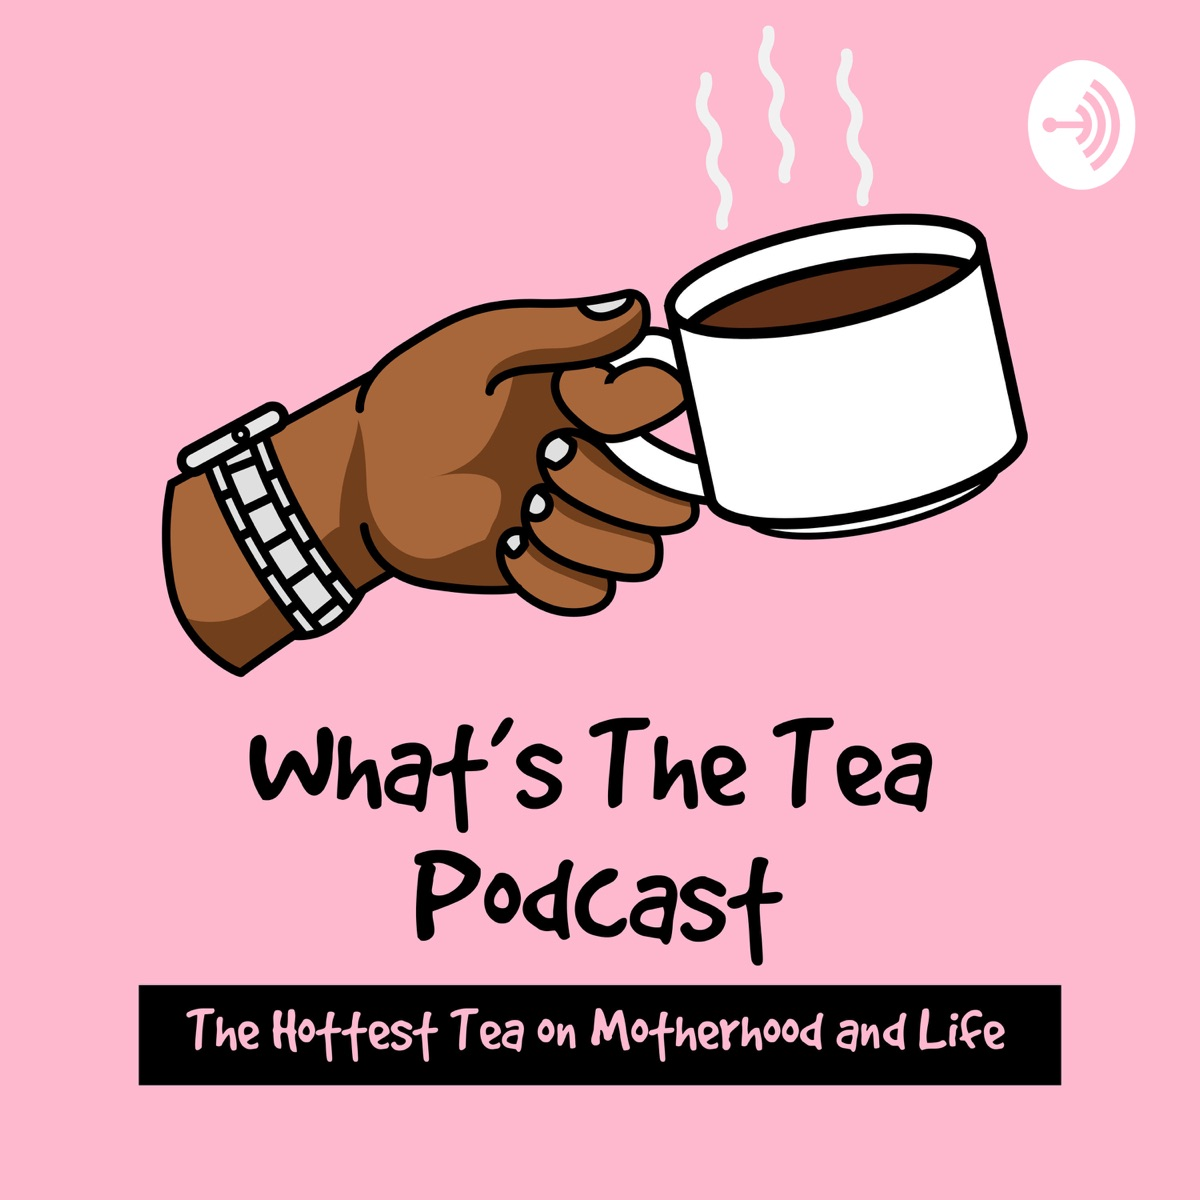 Whats the Tea Podcast